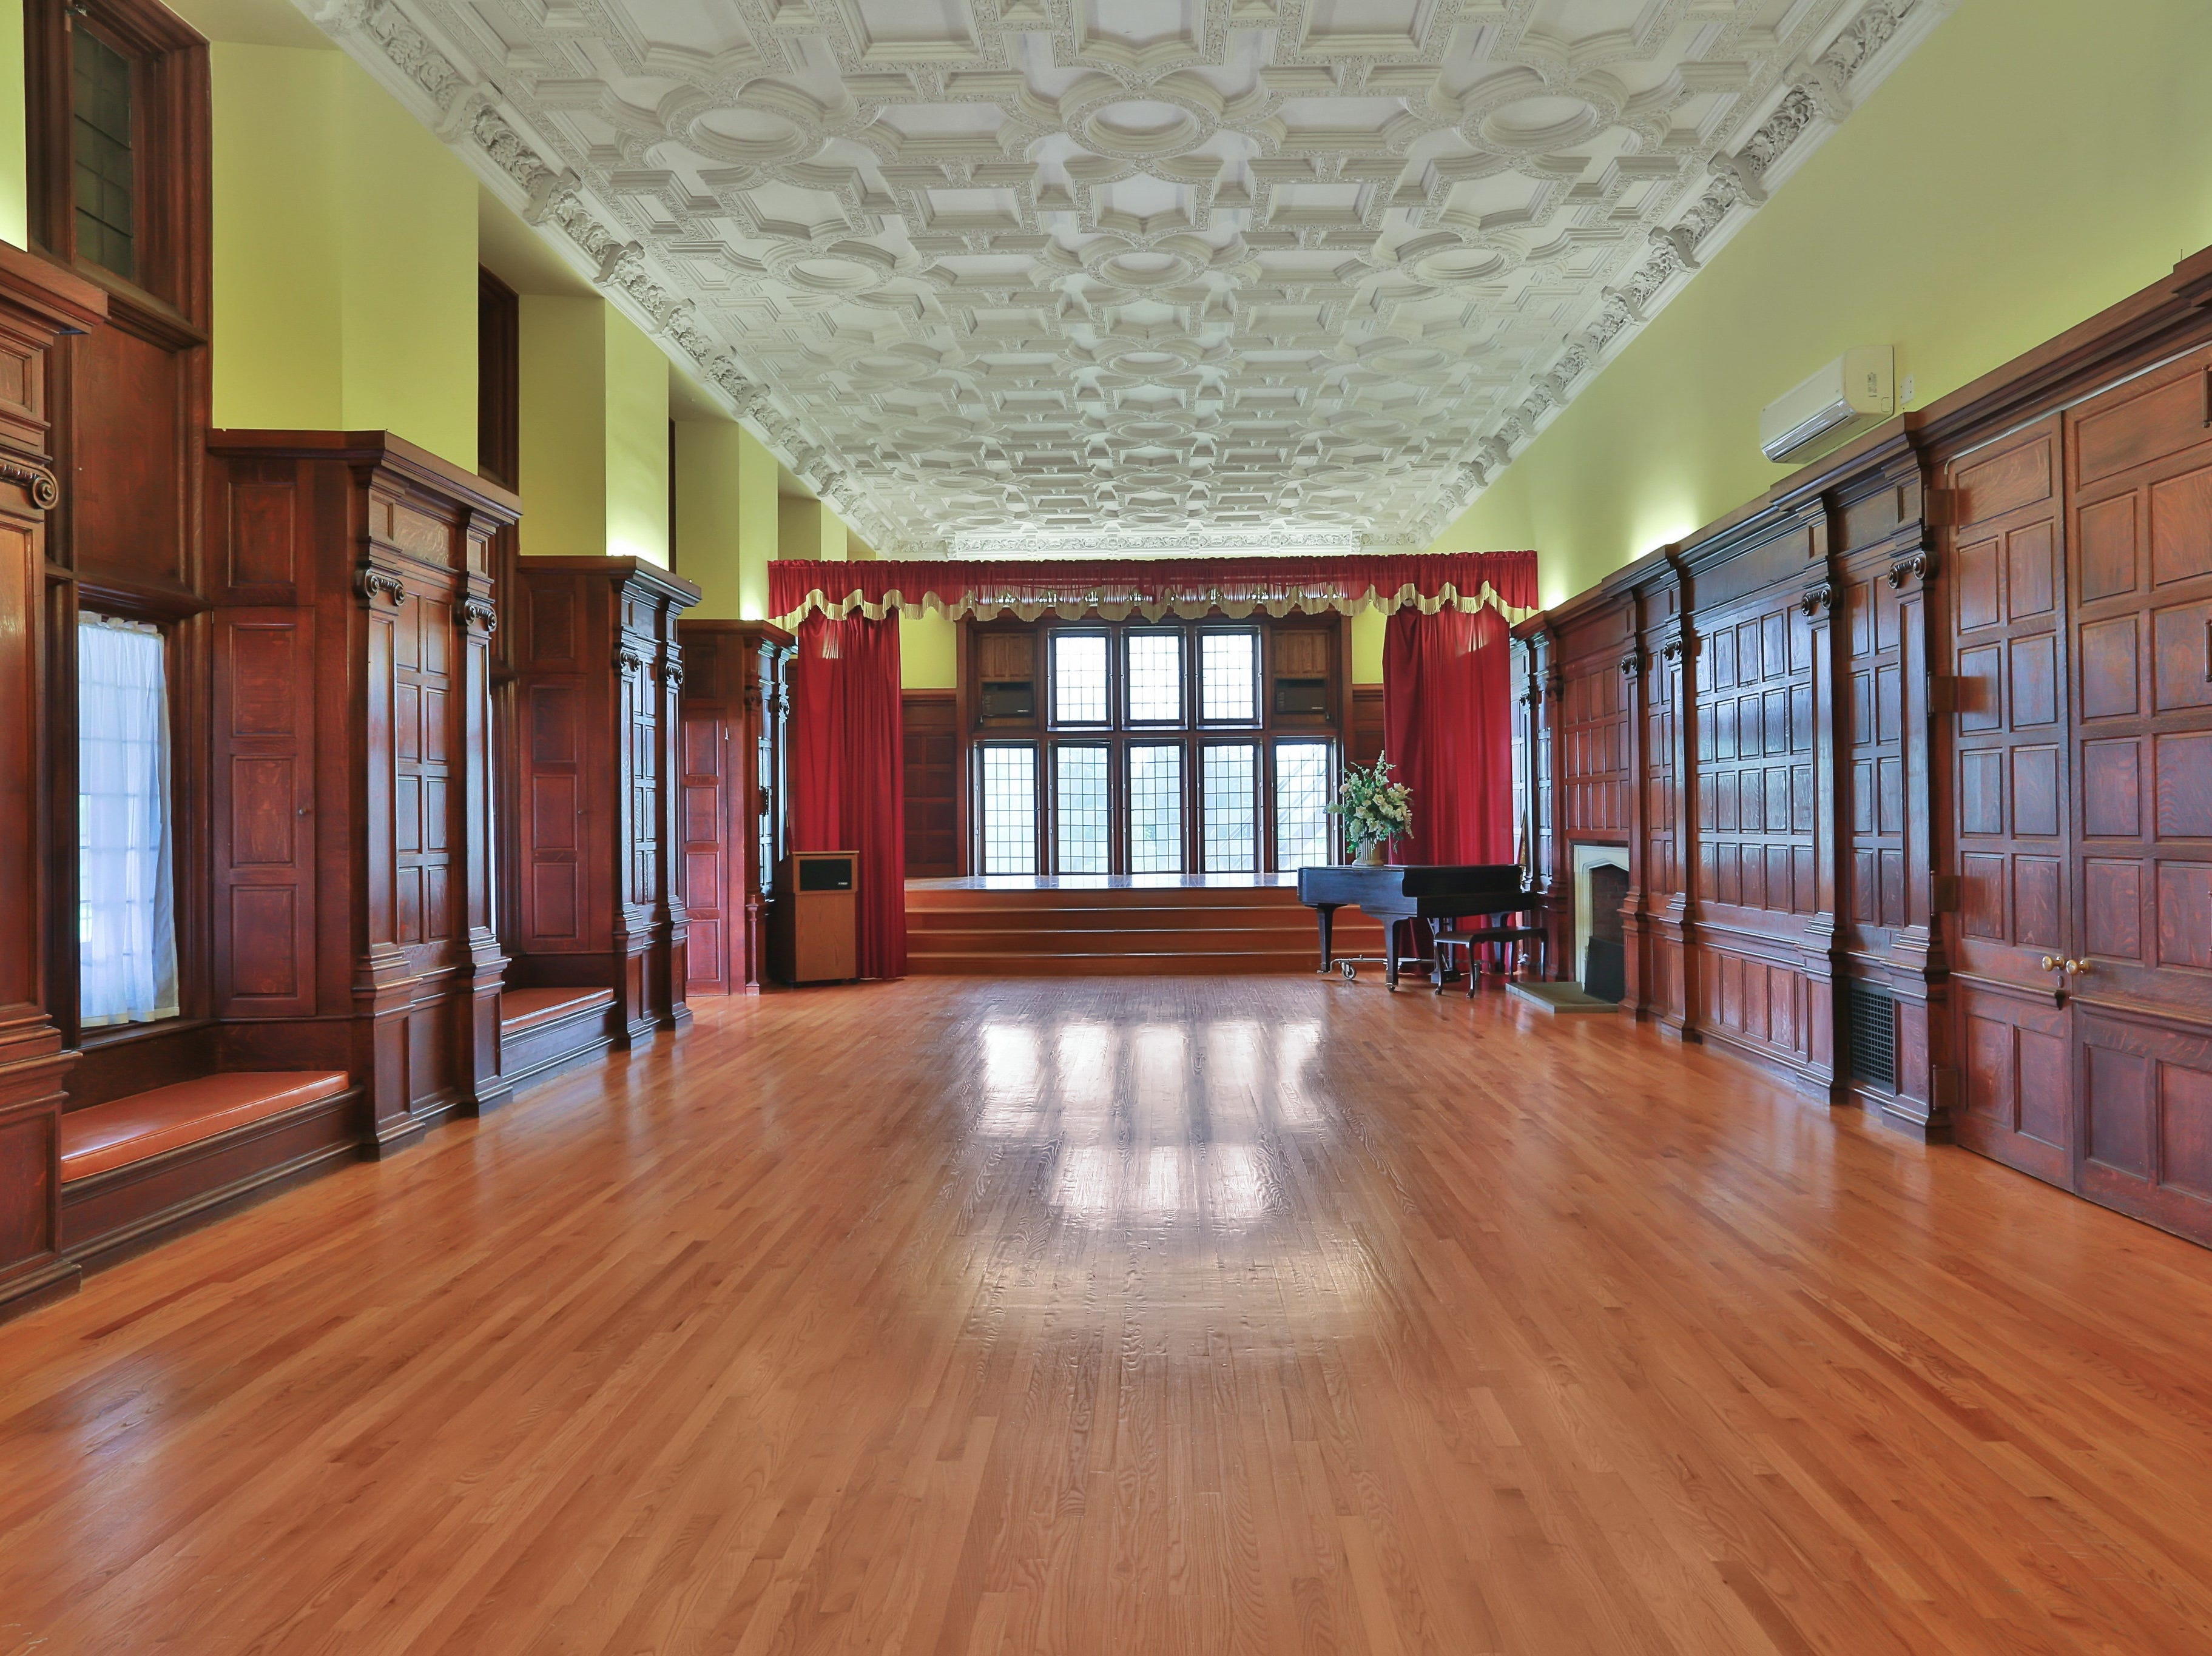 The walls and floor are oak, while the ceiling is elaborately sculptured plaster.